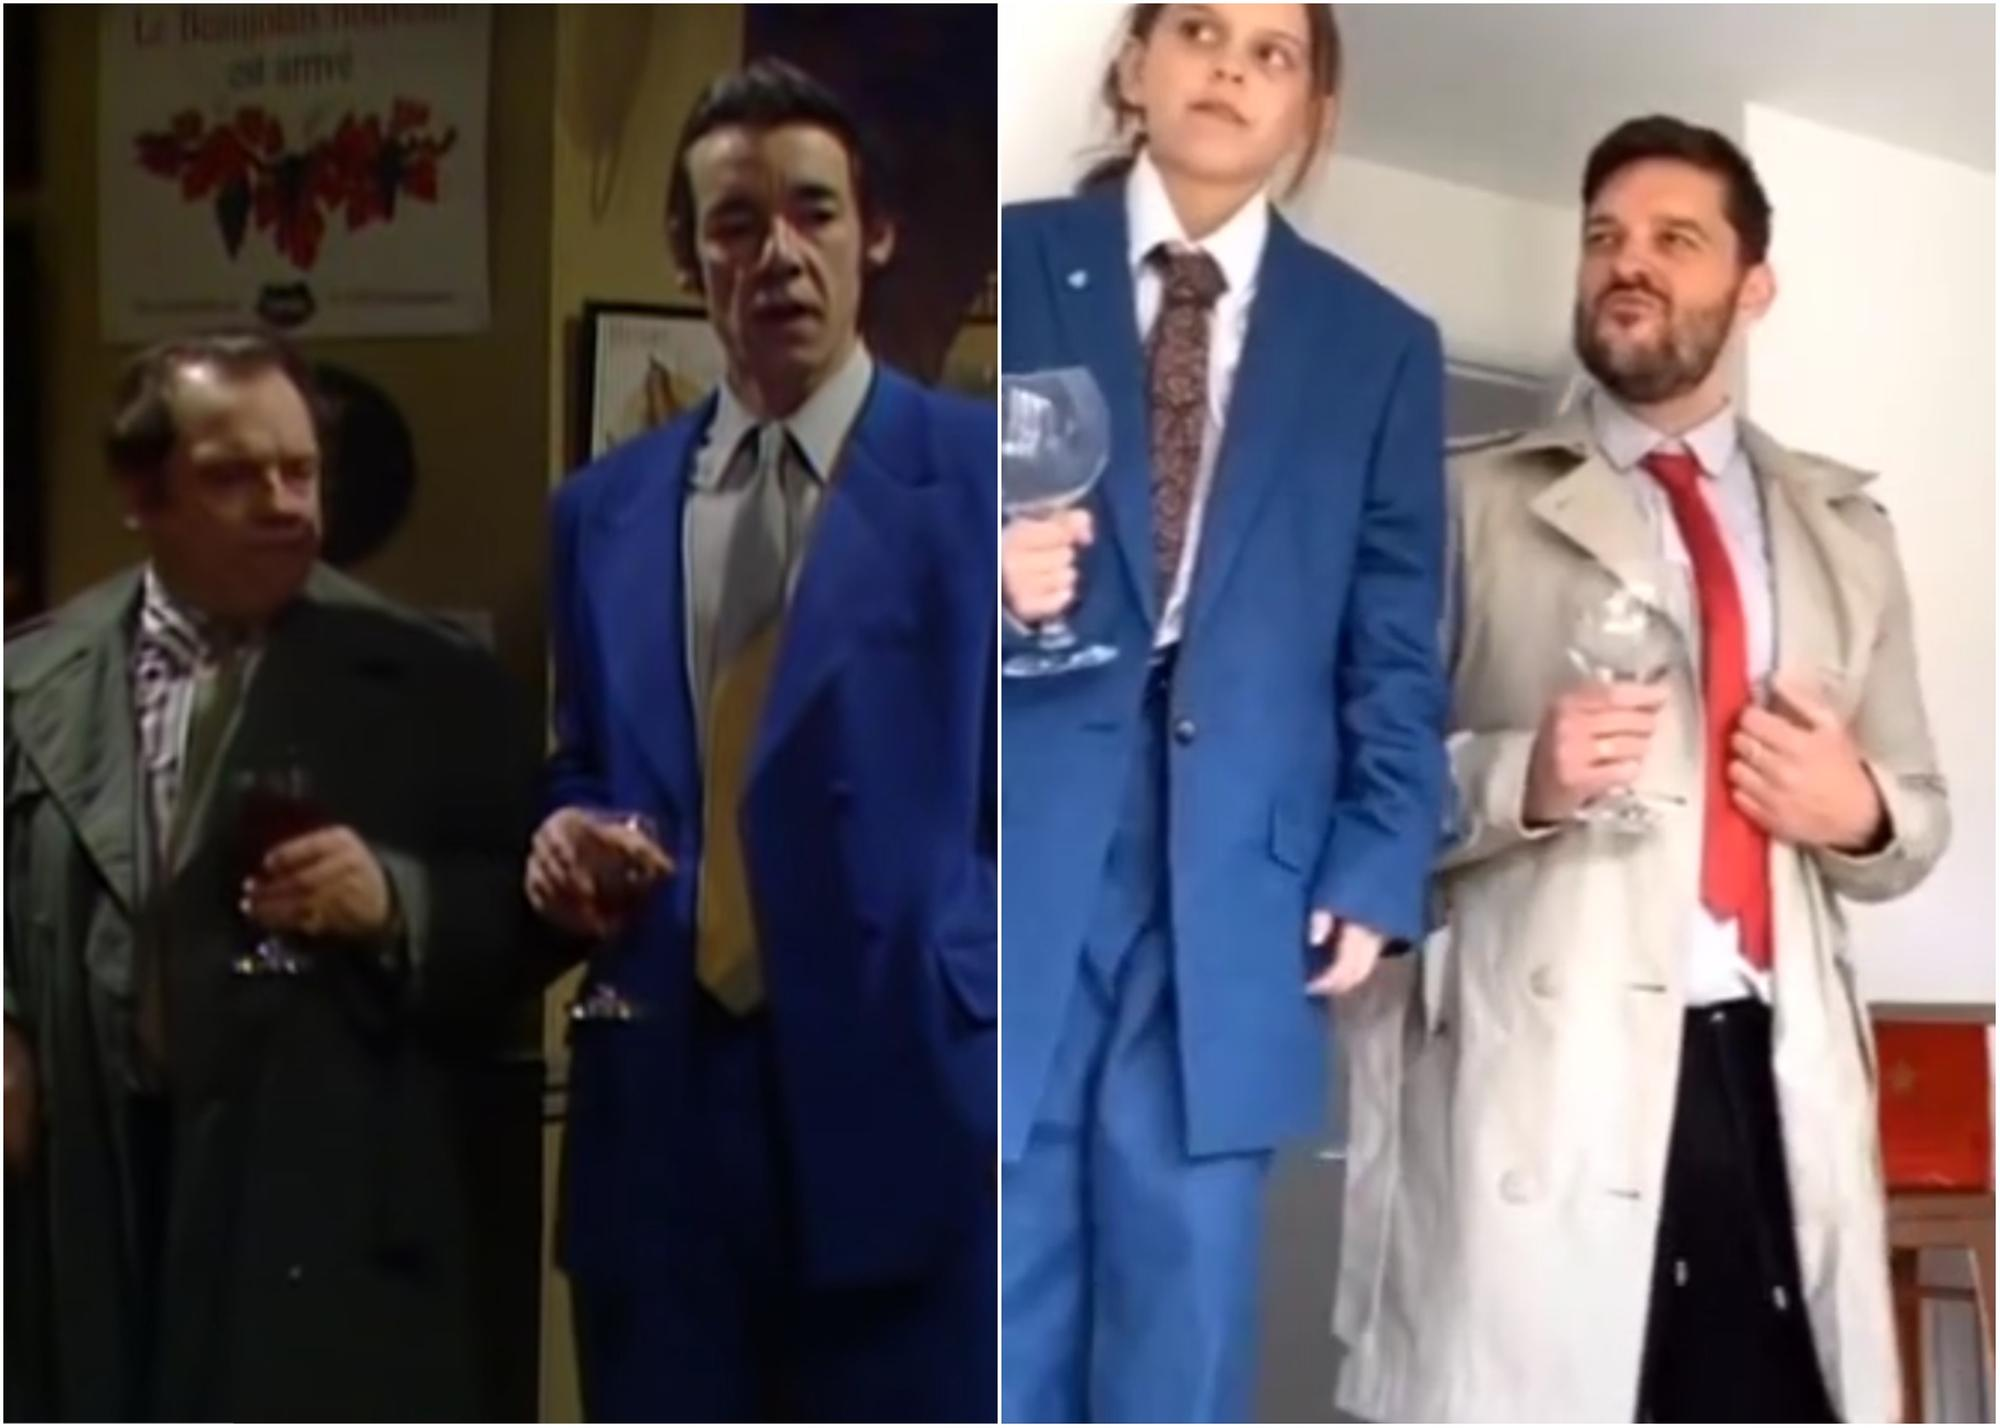 Dad S Tik Tok Video Goes Viral With Recreation Of Classic Only Fools Horses Bar Scene Sunderland Echo